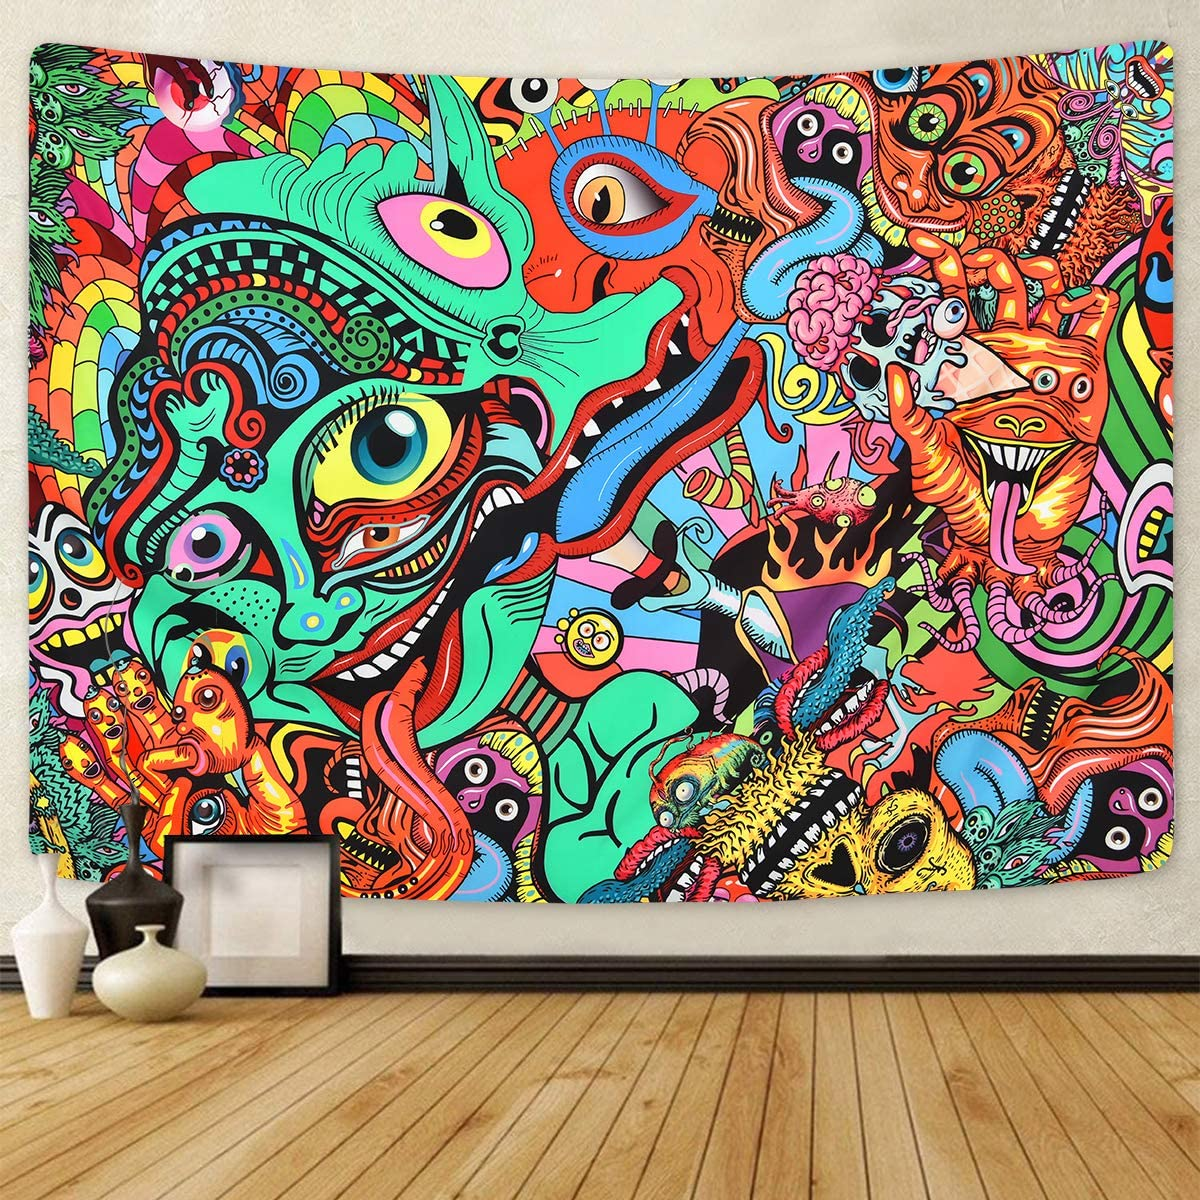 Psychedelic Arabesque Tapestry Abstract Hippie Tapestries Fantasy Trippy Tapestry Fractal Colorful Monster Tapestry for Room 70.9 92.5 inches